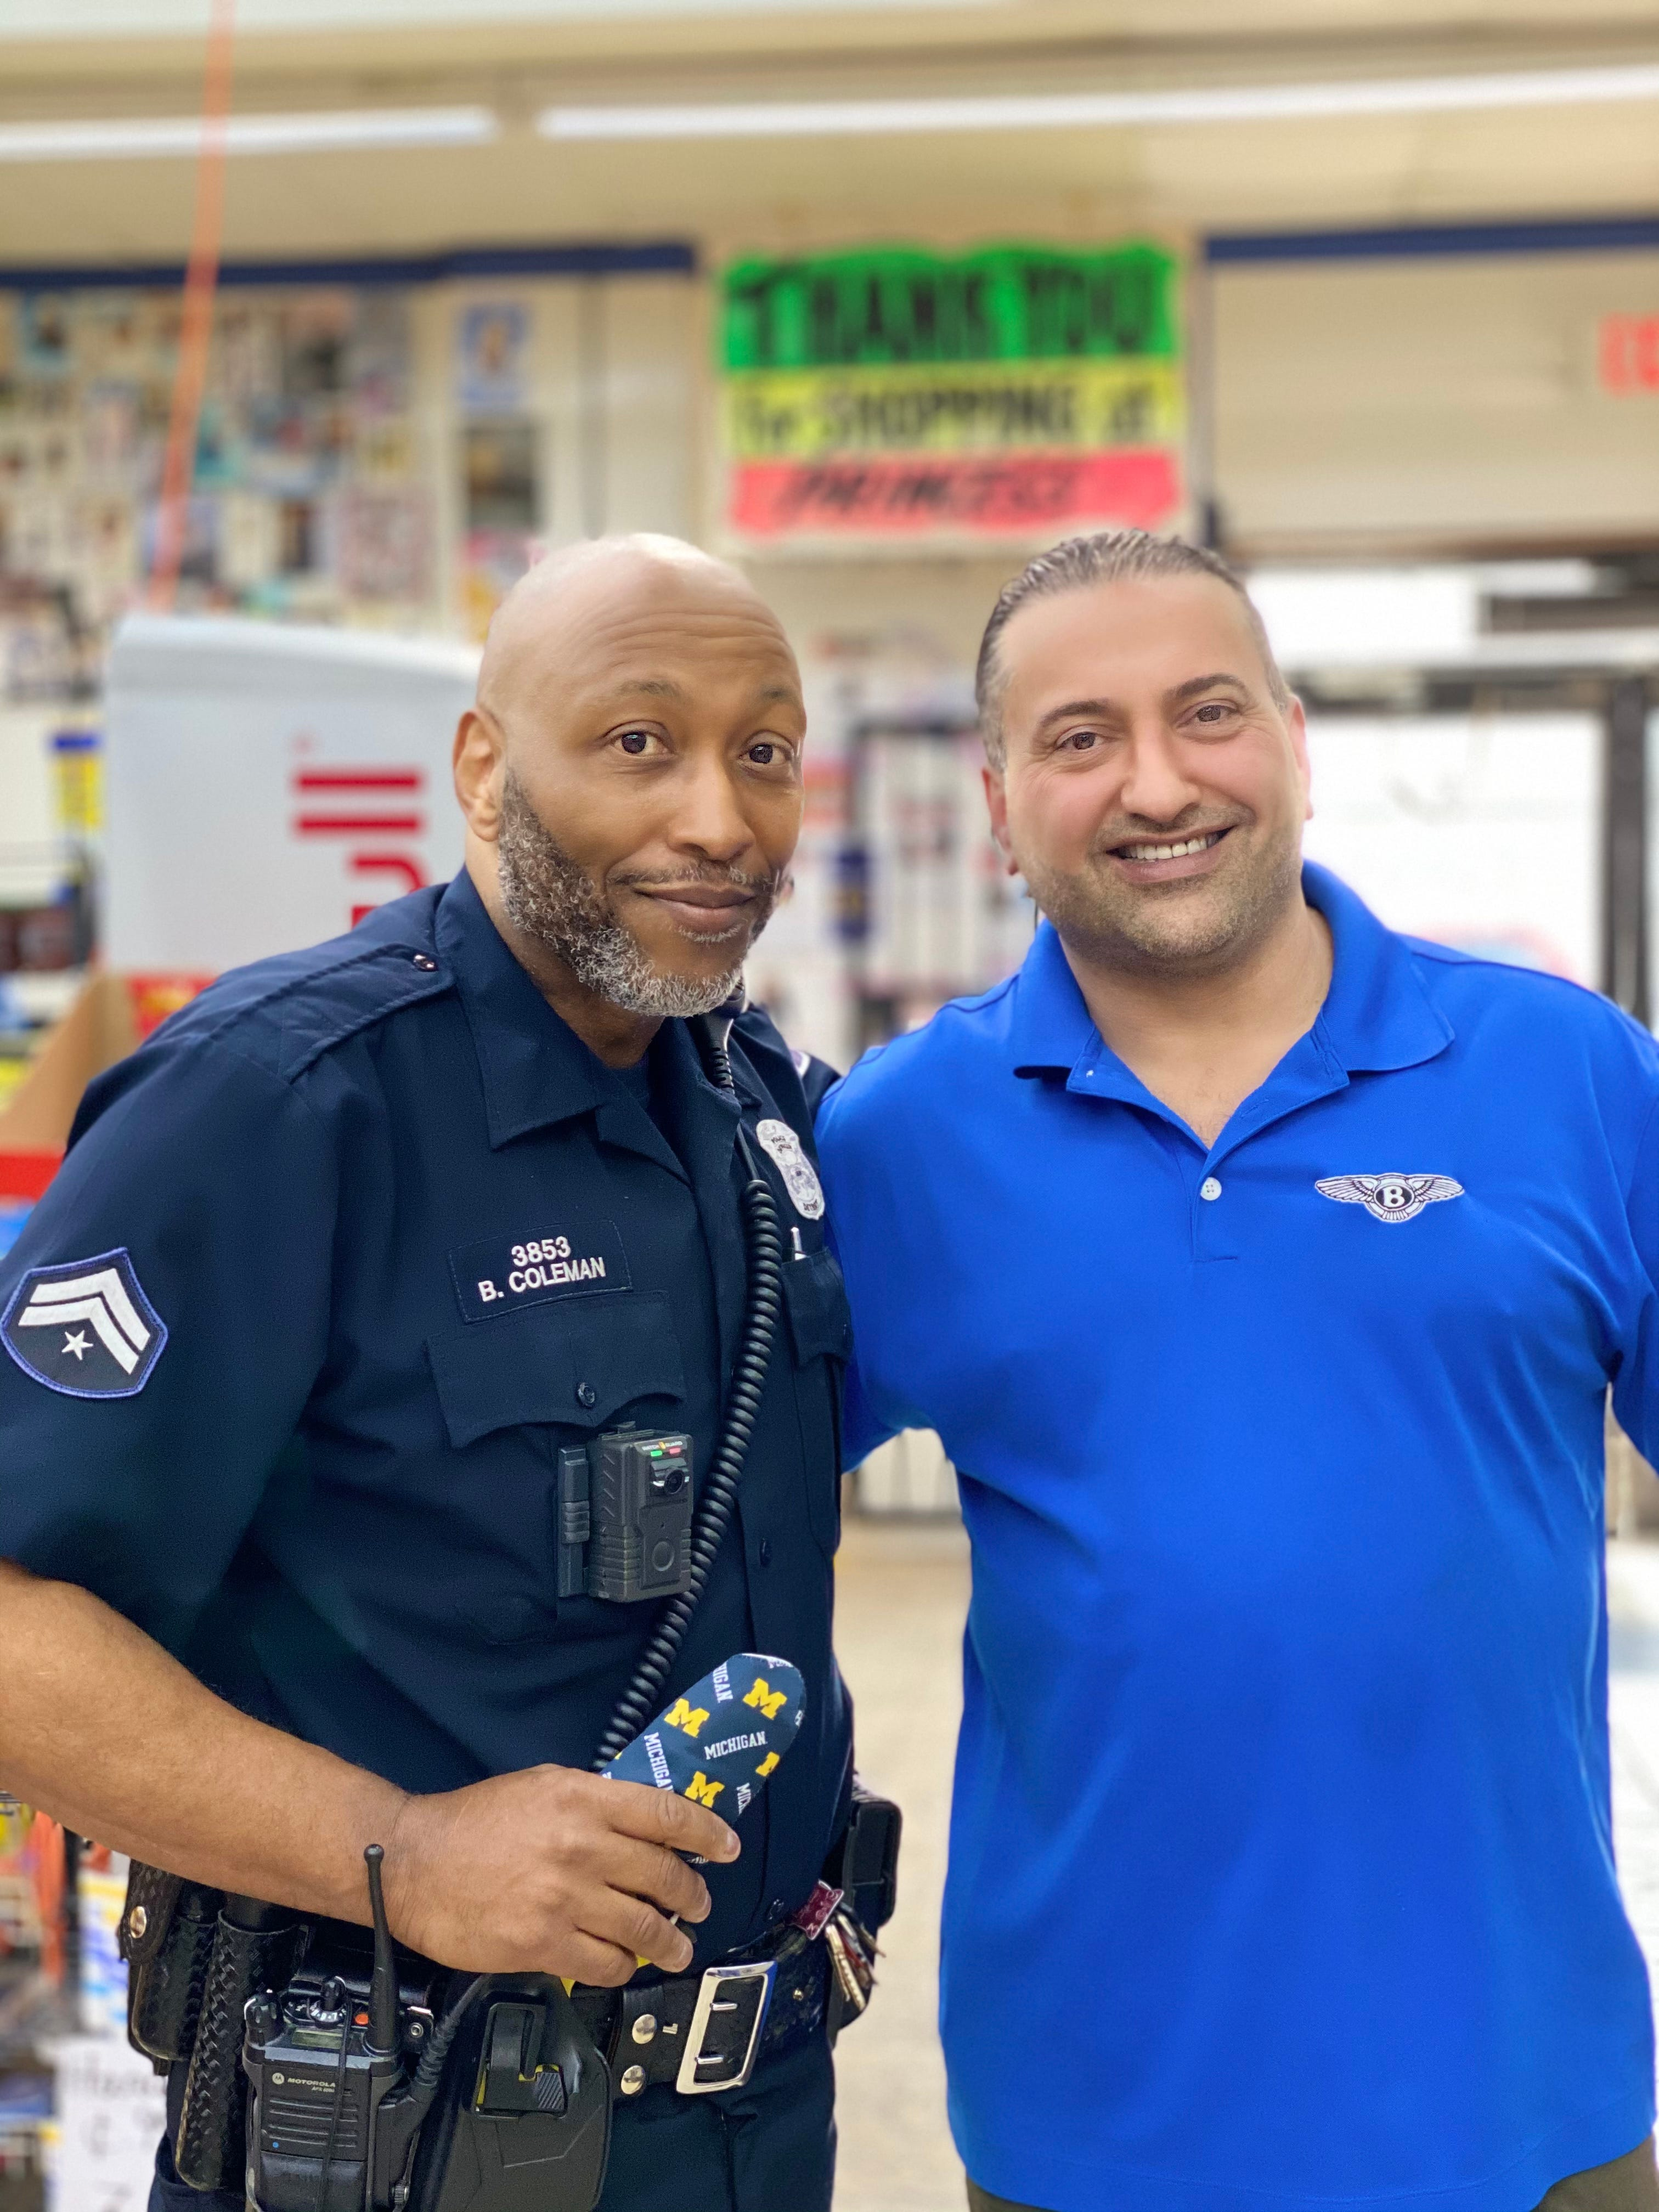 Officer Barren Coleman standing with Sal Sybri, 43, the owner of Princess Superette Market, a liquor store apart of the neighborhood Coleman patrols.